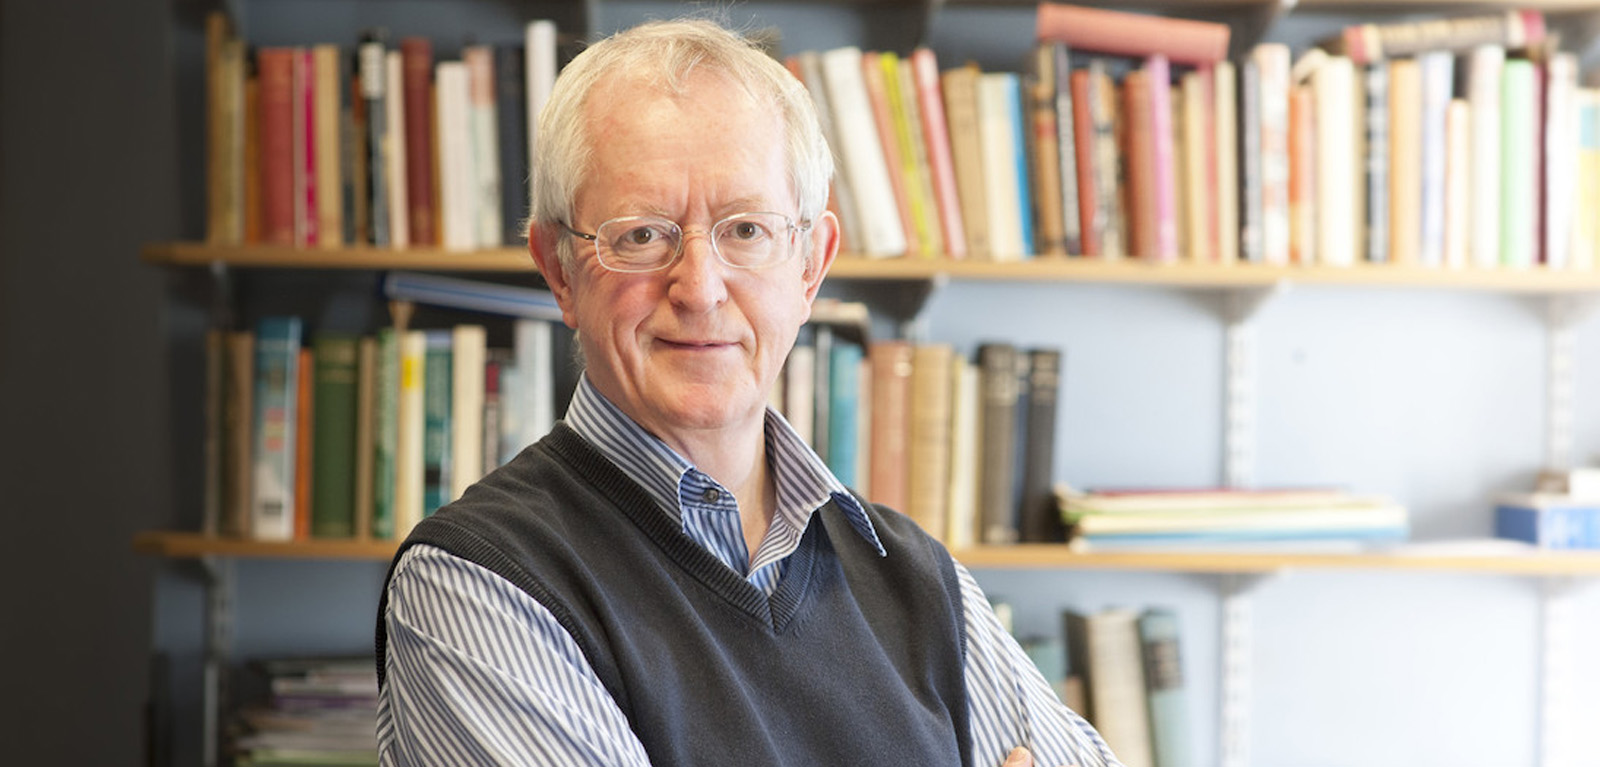 Professor Keith Jeffery